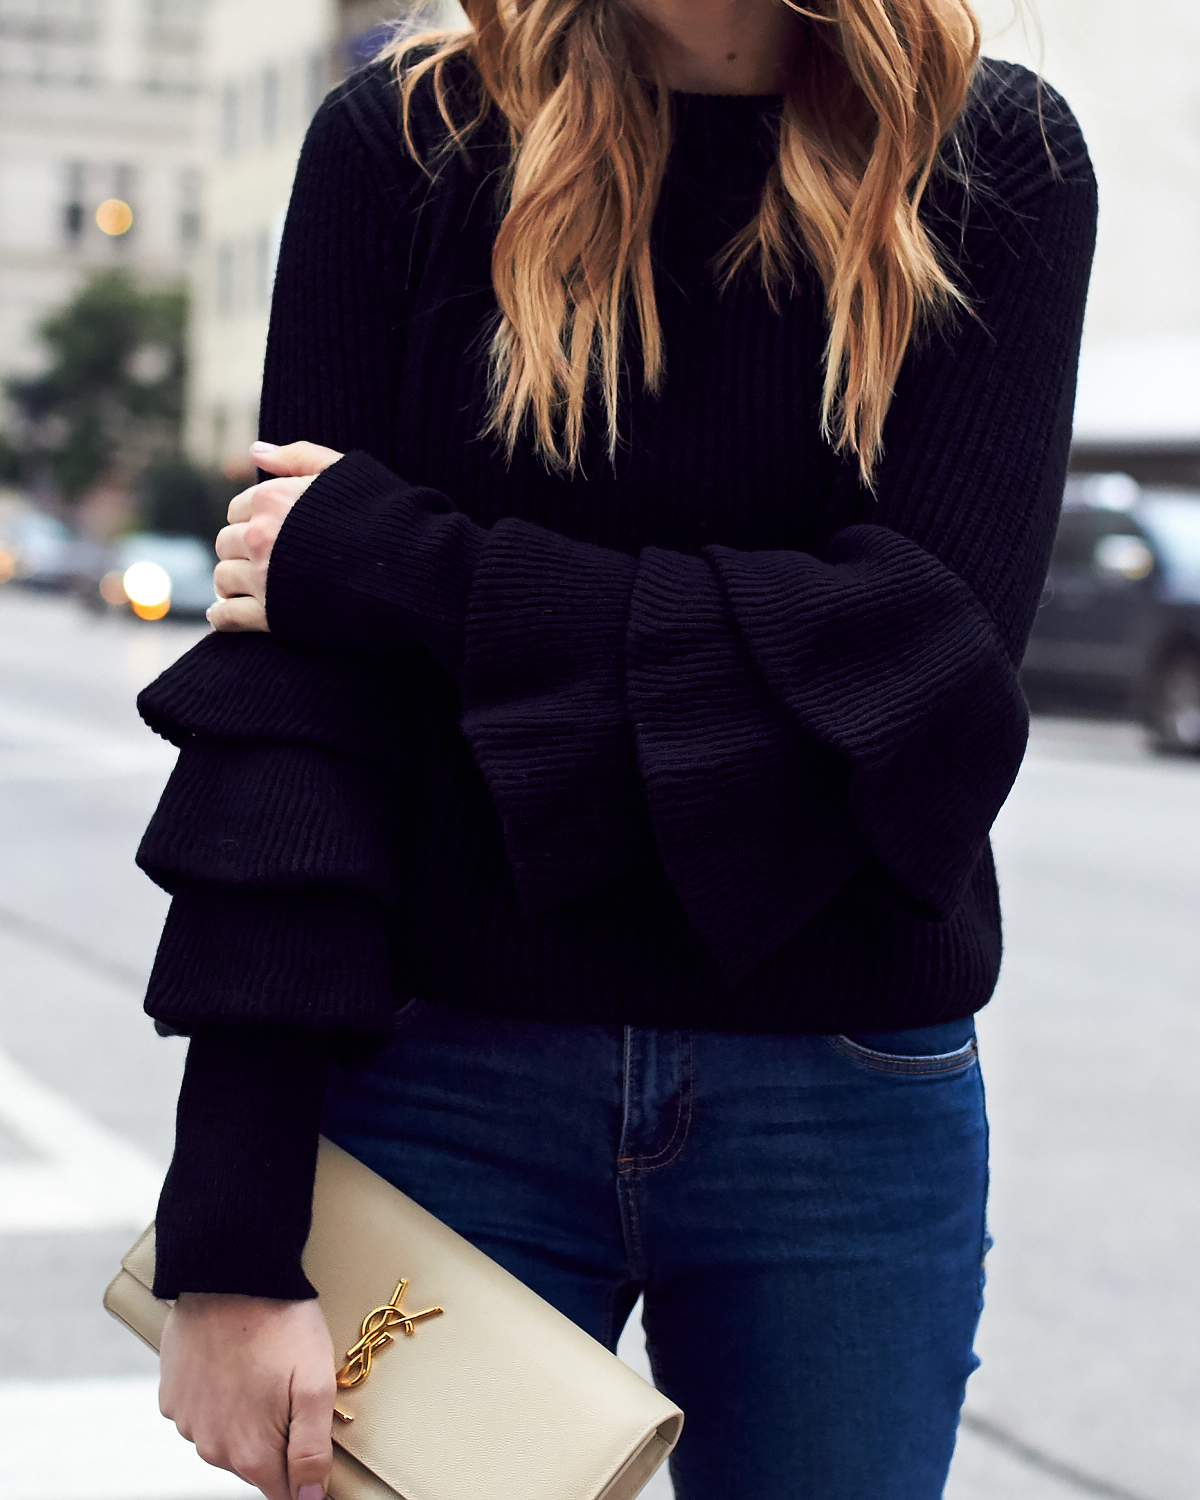 Fall Outfit, Winter Outfit, Ruffle Sleeve Sweater, Saint Laurent Clutch